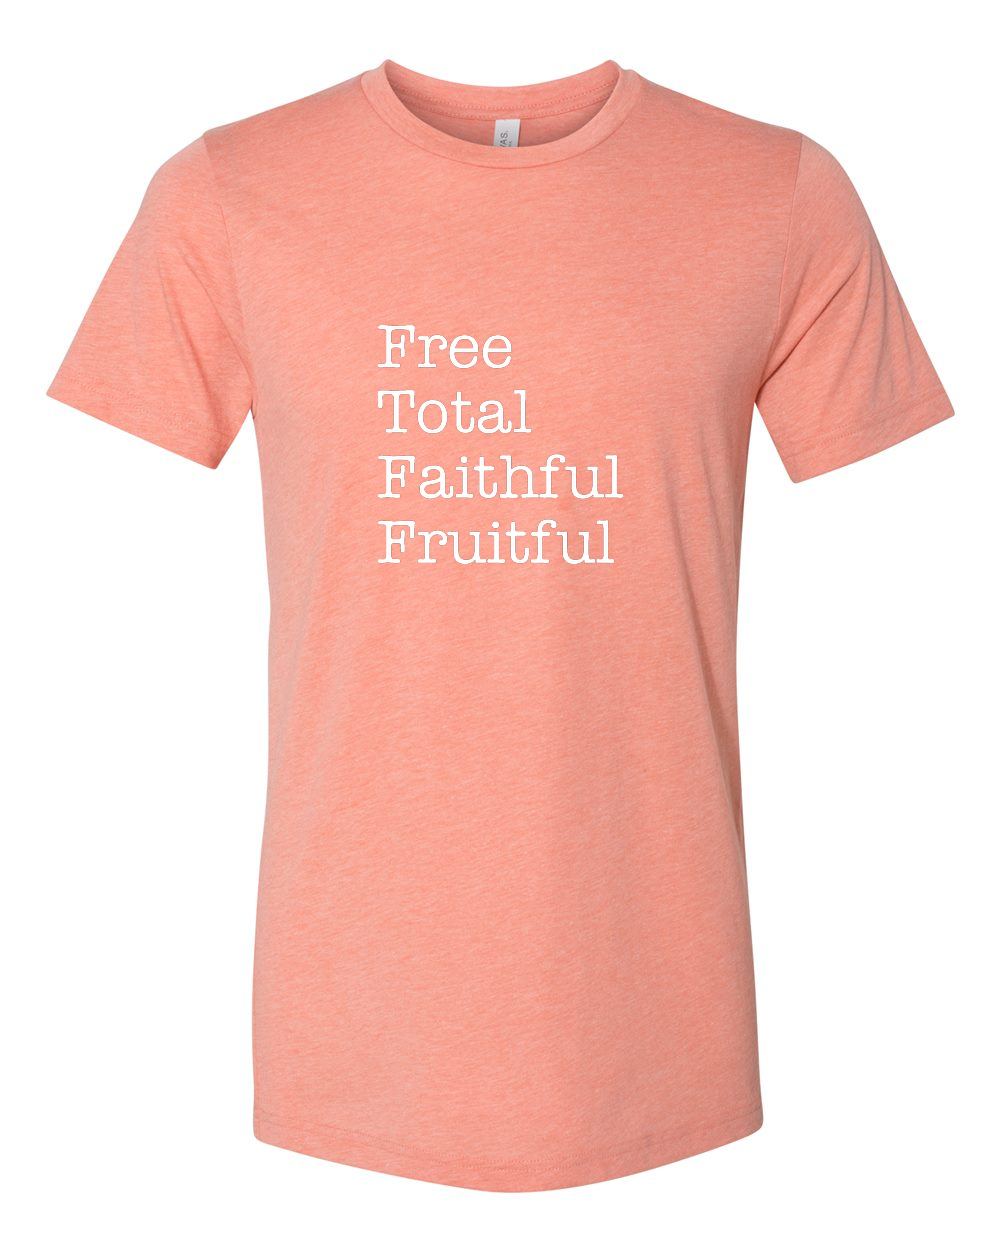 Free Total Faithful Fruitful - Theology of the Body T Shirt - That One Sheep